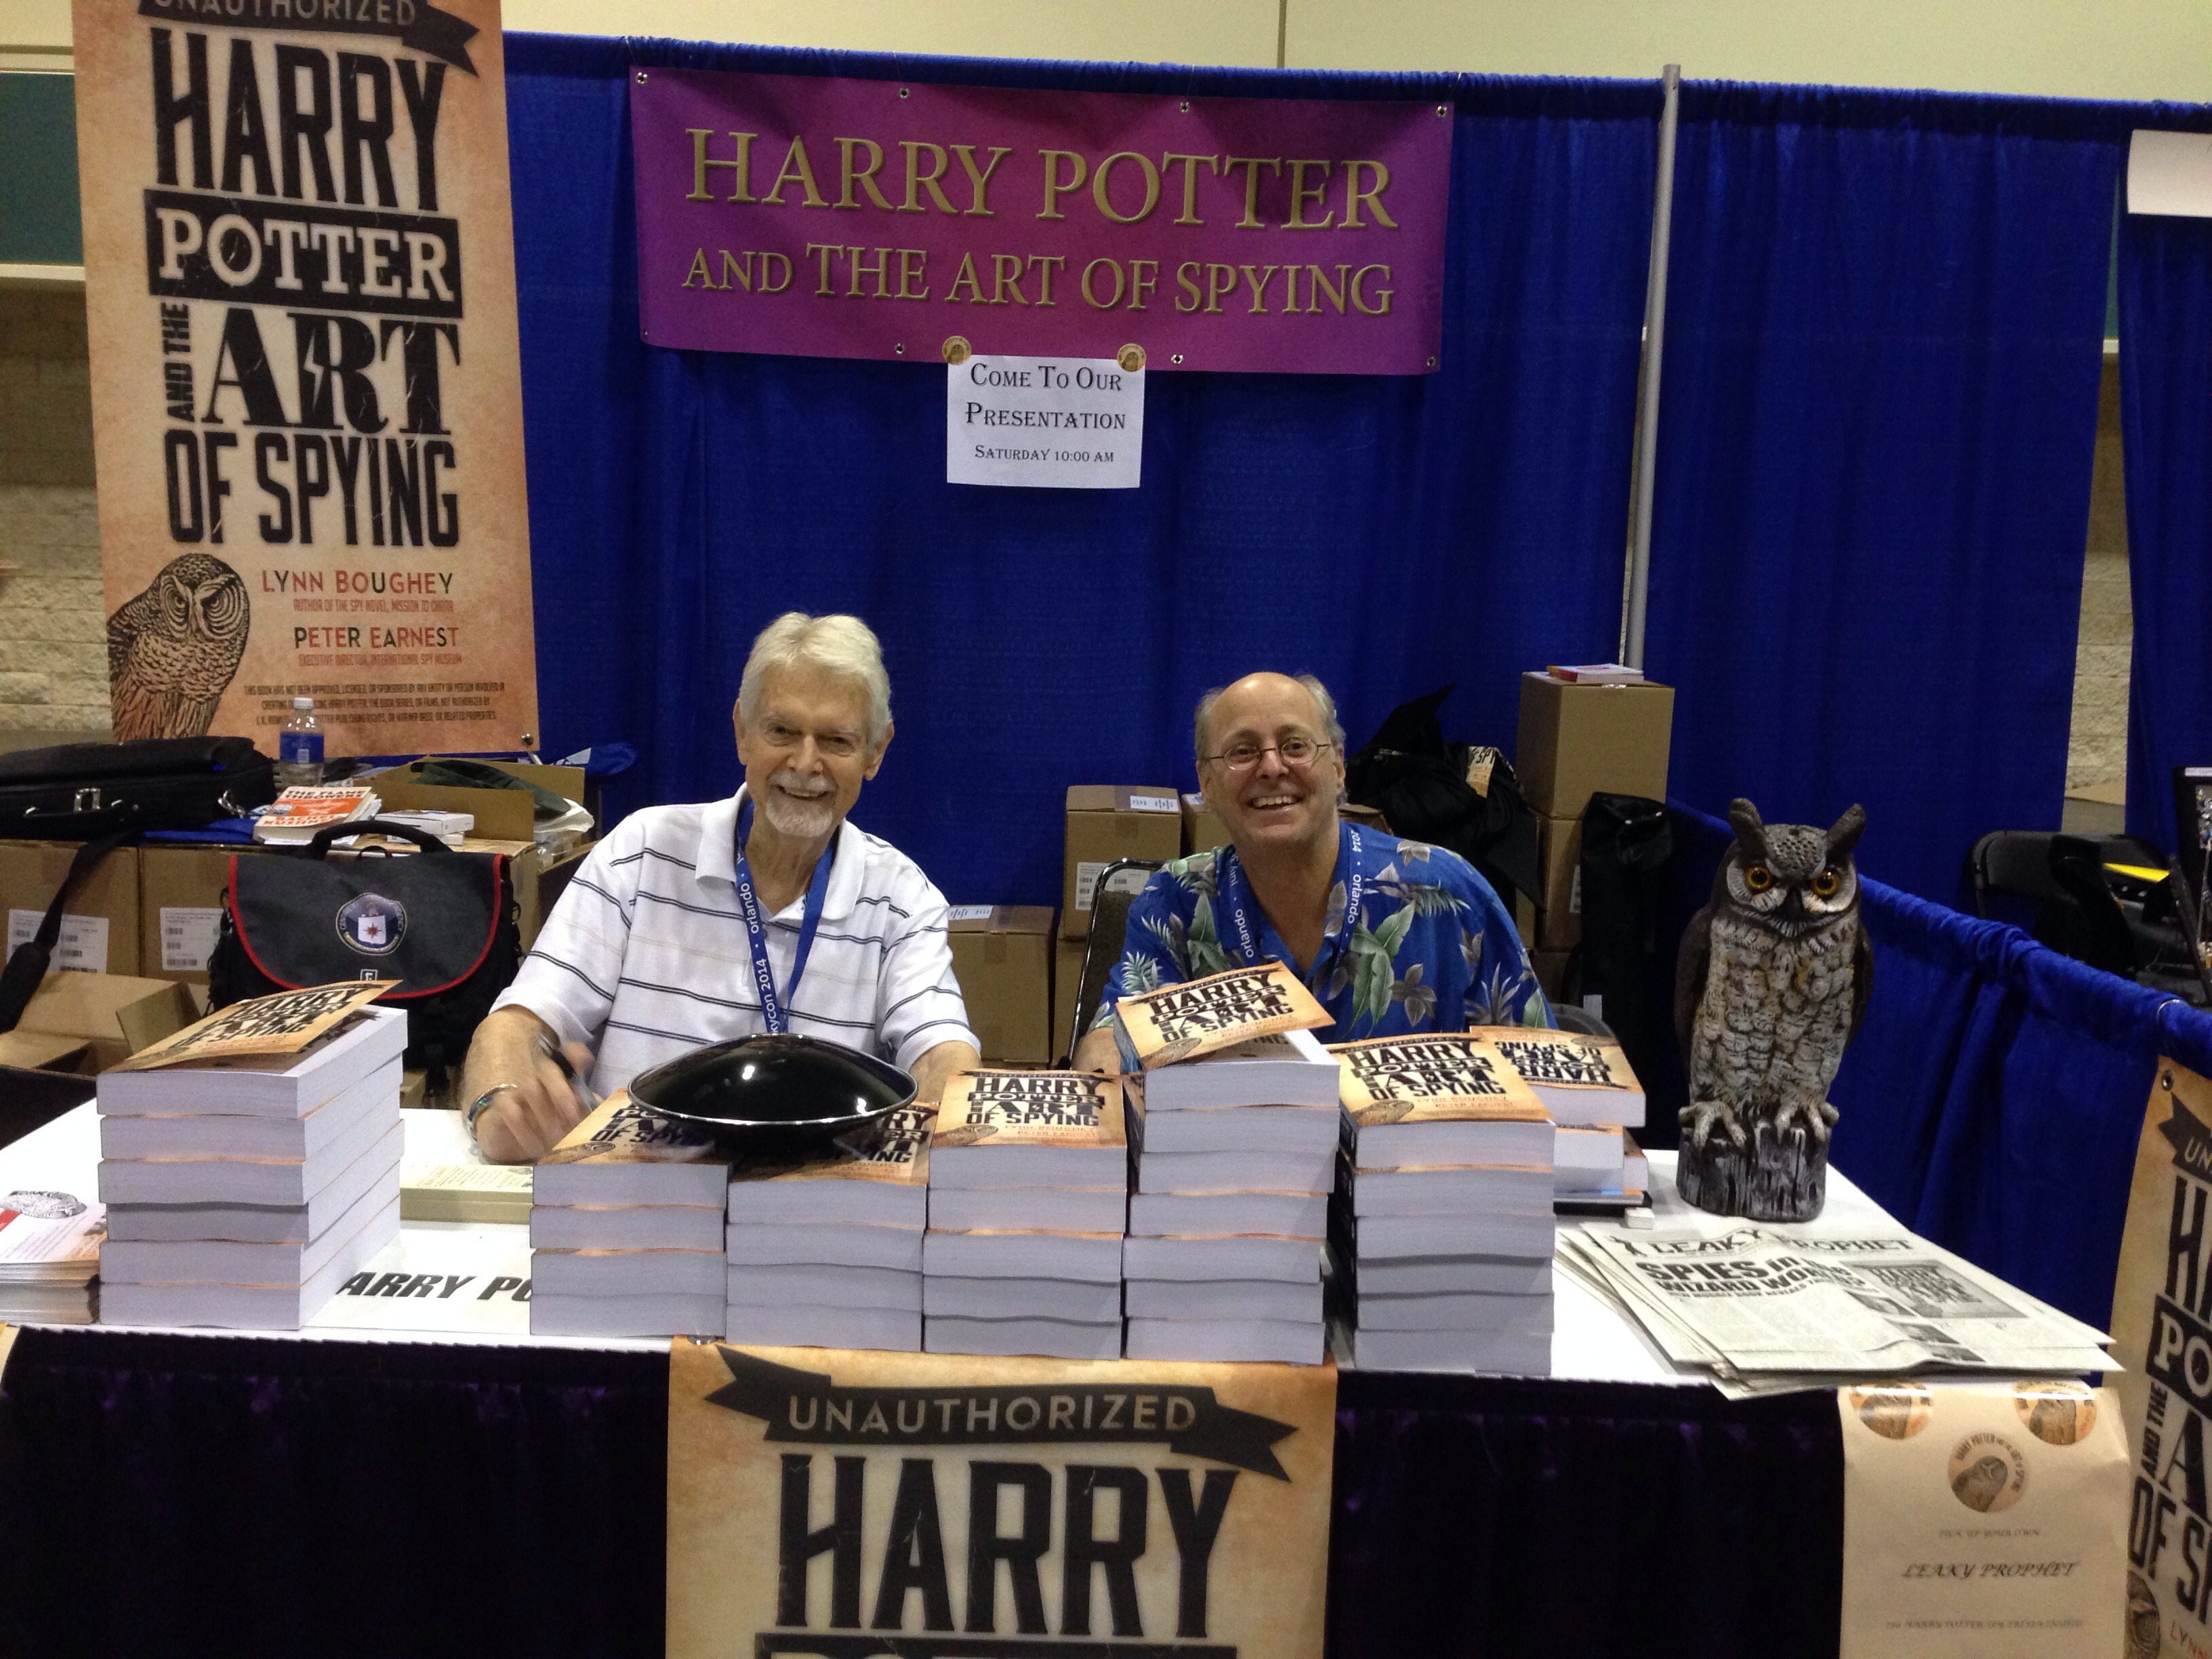 LeakyCon 2014 - The Art of Spying